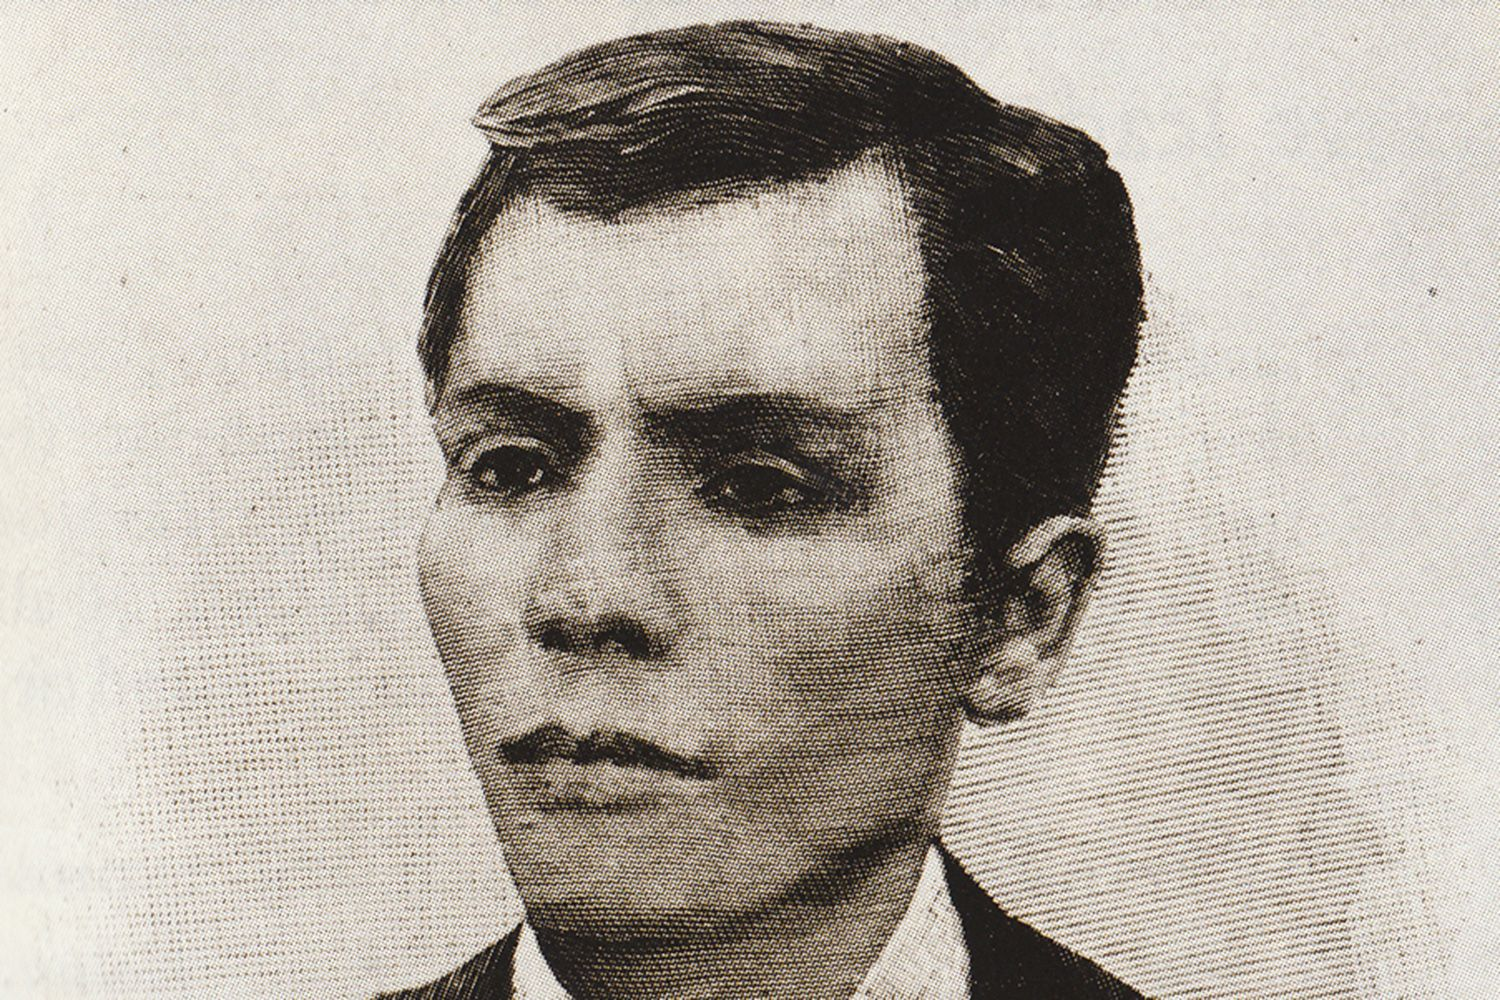 biography of andres bonifacio With andres bonifacio, candido tirona, emilio jacinto and pio valenzuela they founded the council of the ancient assignment in kawit, cavite procopio was led into light, which is a two part of such council.